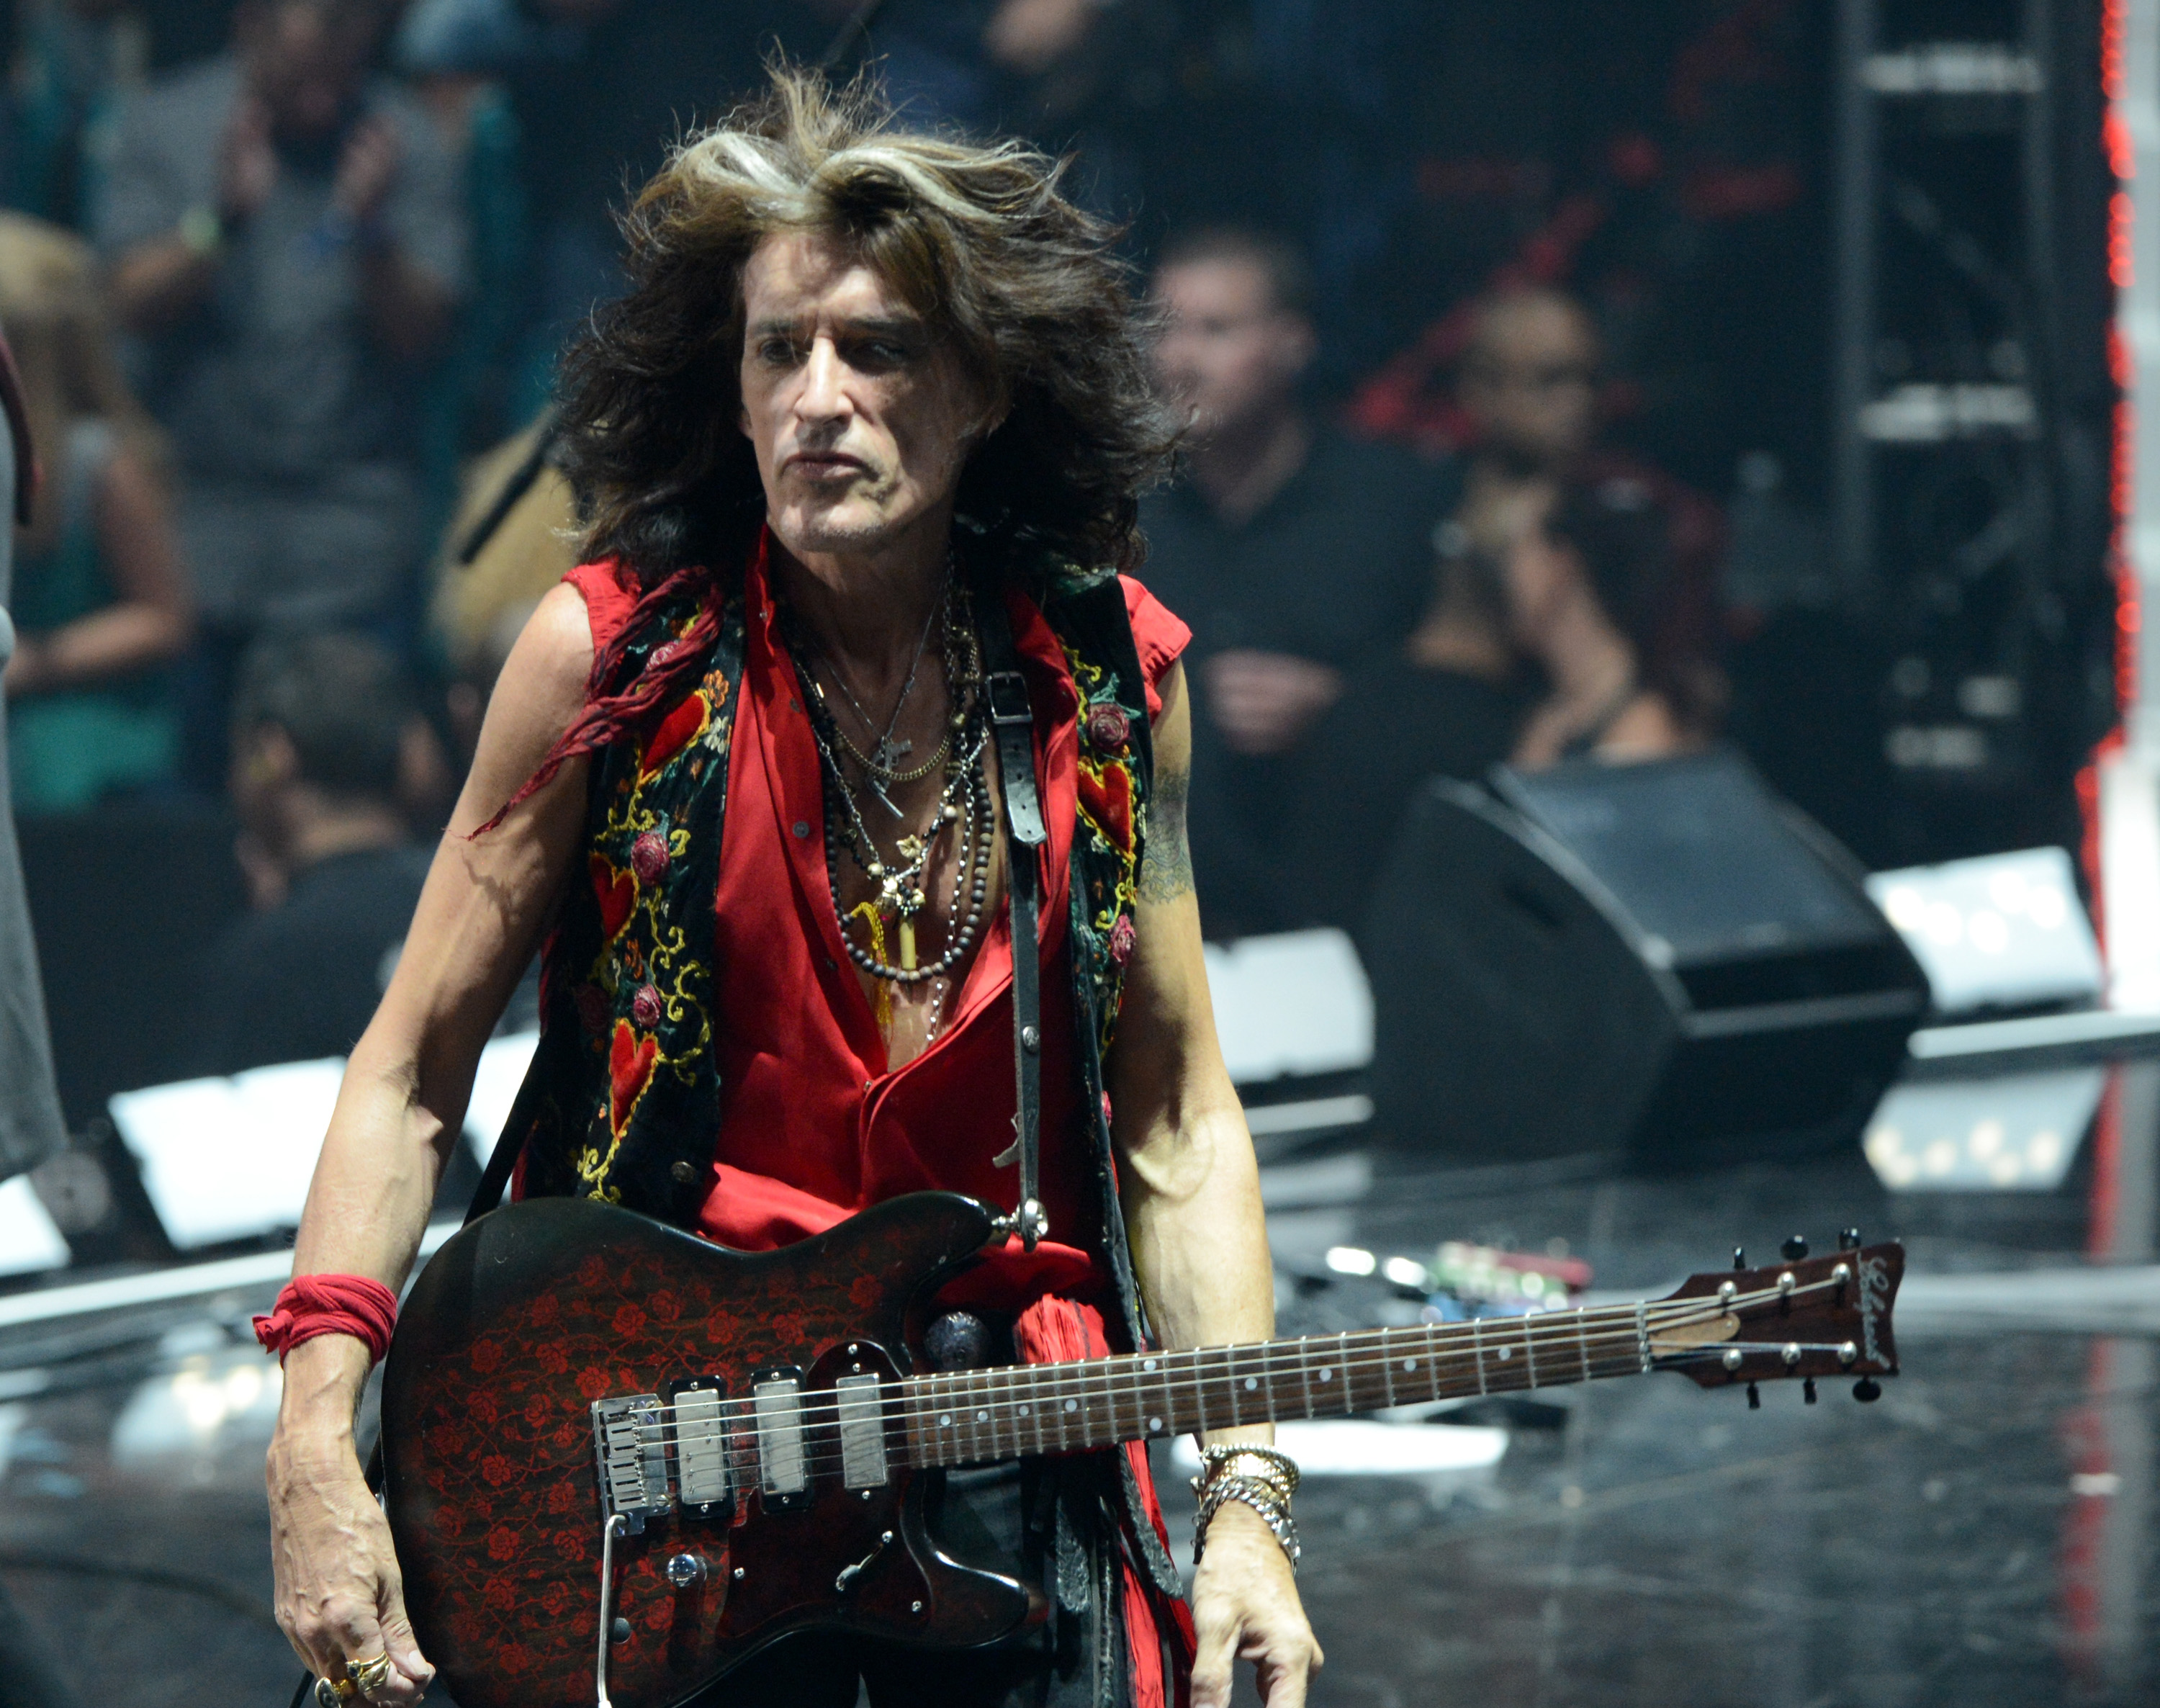 LAS VEGAS, NV - SEPTEMBER 22:  Guitarist Joe Perry of Aerosmith performs onstage during the 2012 iHeartRadio Music Festival at the MGM Grand Garden Arena on September 22, 2012 in Las Vegas, Nevada.  (Photo by Michael Kovac/Getty Images for Clear Channel)